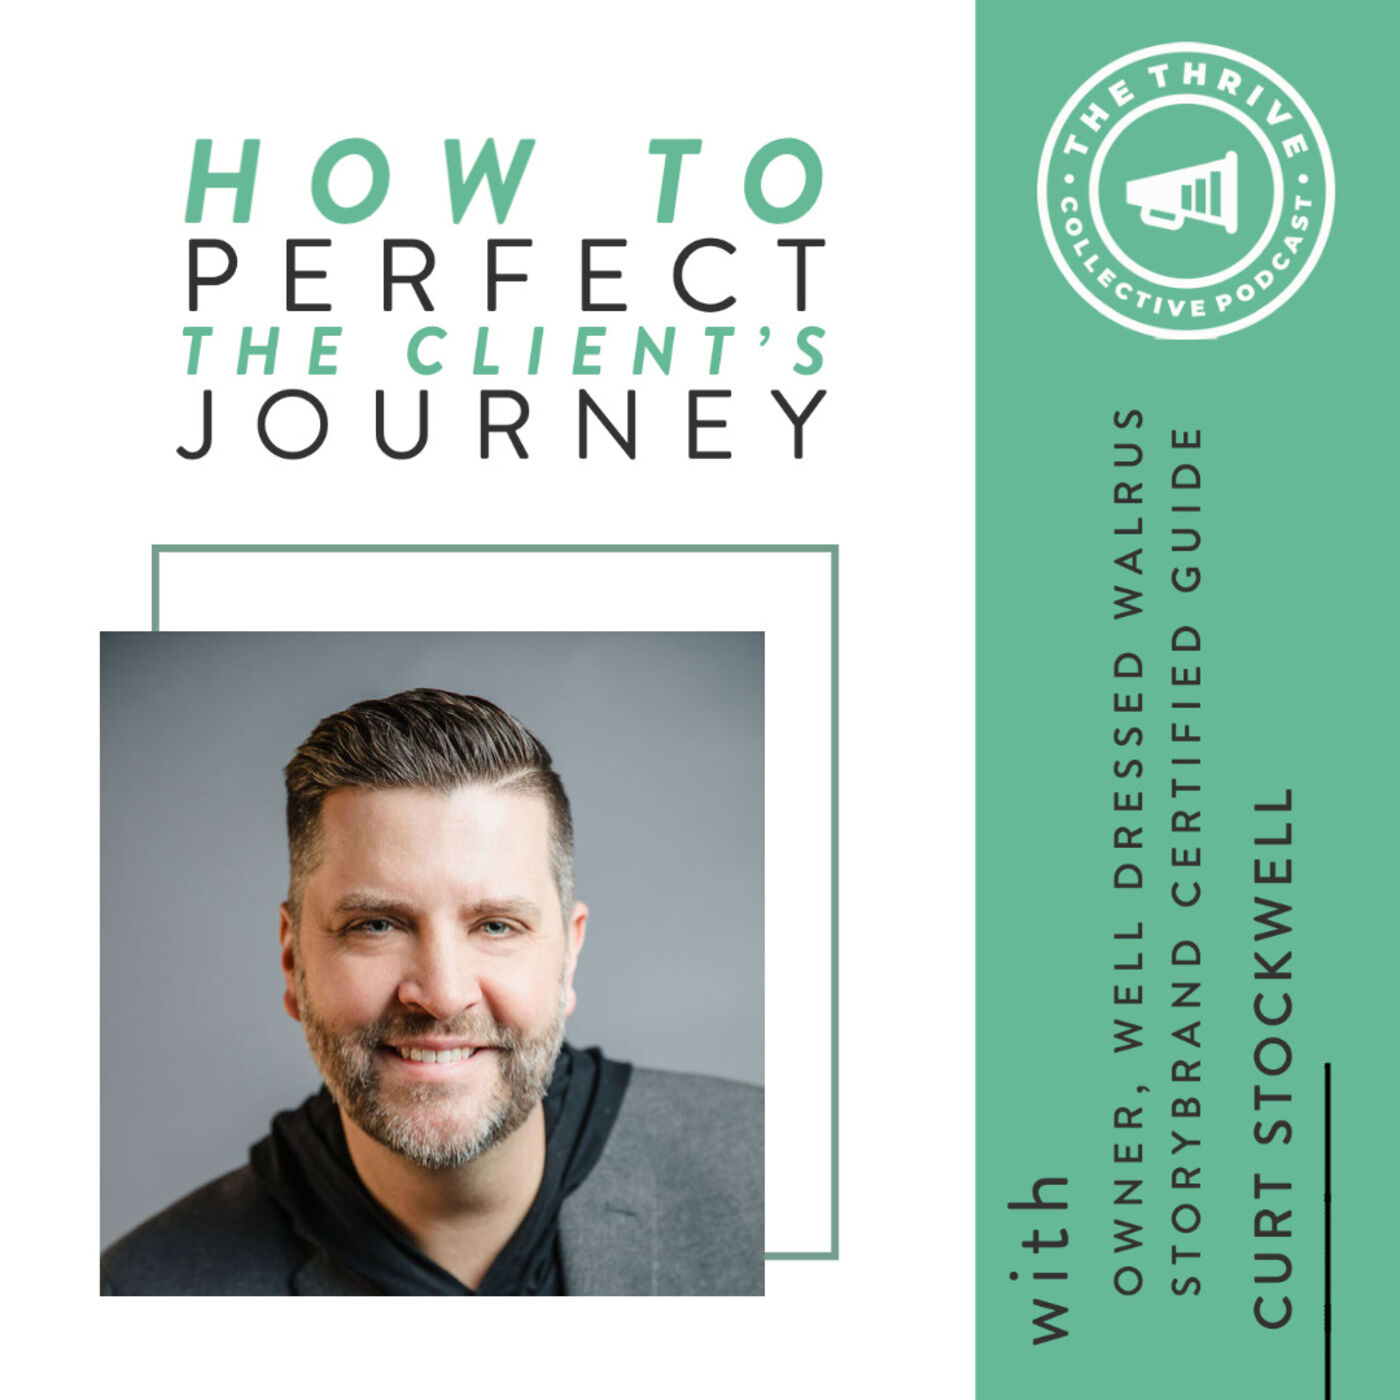 How to Perfect the Client's Journey with Curt Stockwell